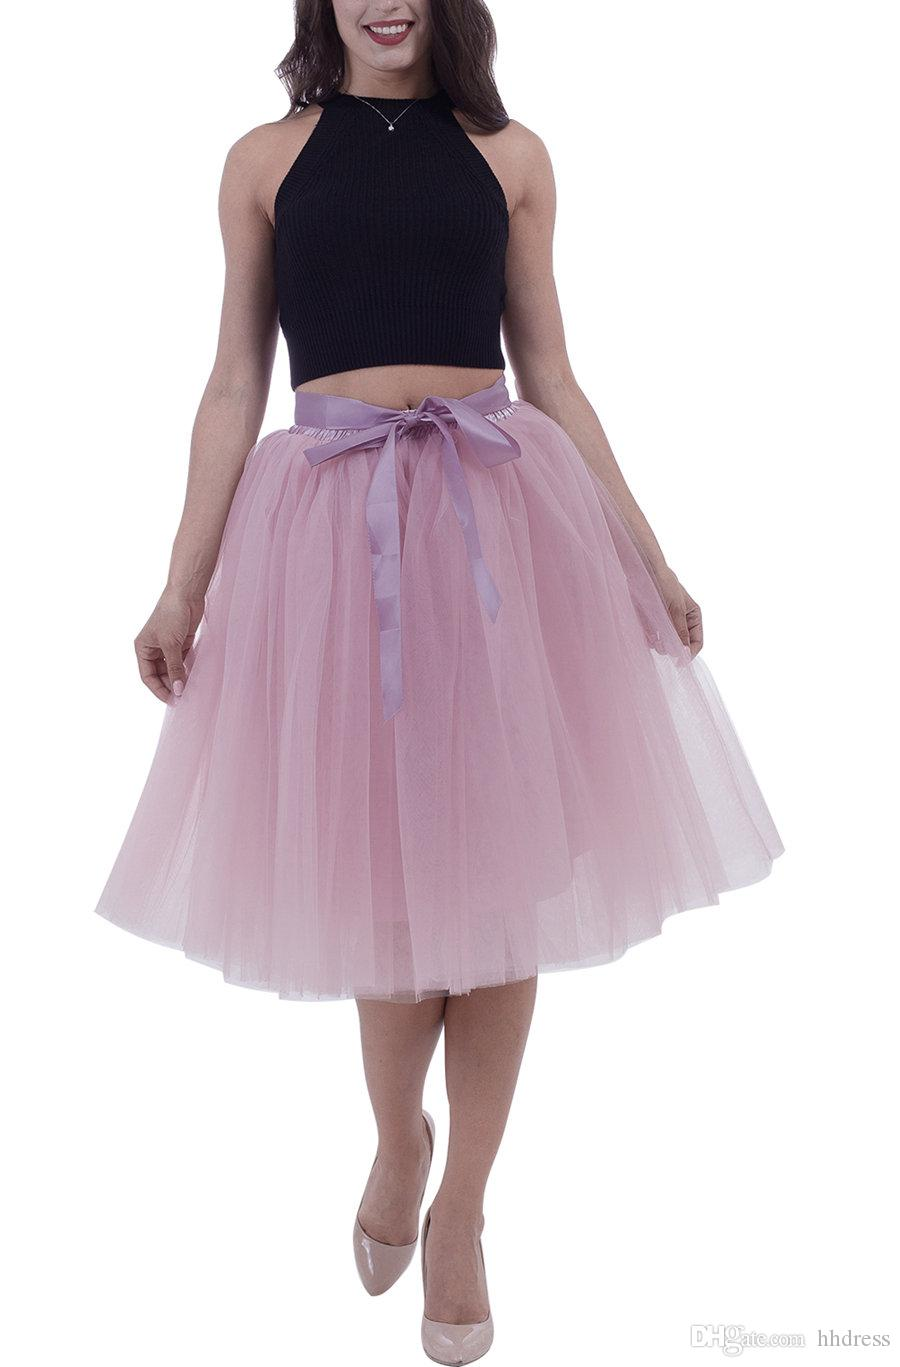 61bec46a6 Dust Pink 7 Layered Midi Tulle Skirt Rainbow tutu petticoats for women  evening party formal Dress Knee length with Bowknot